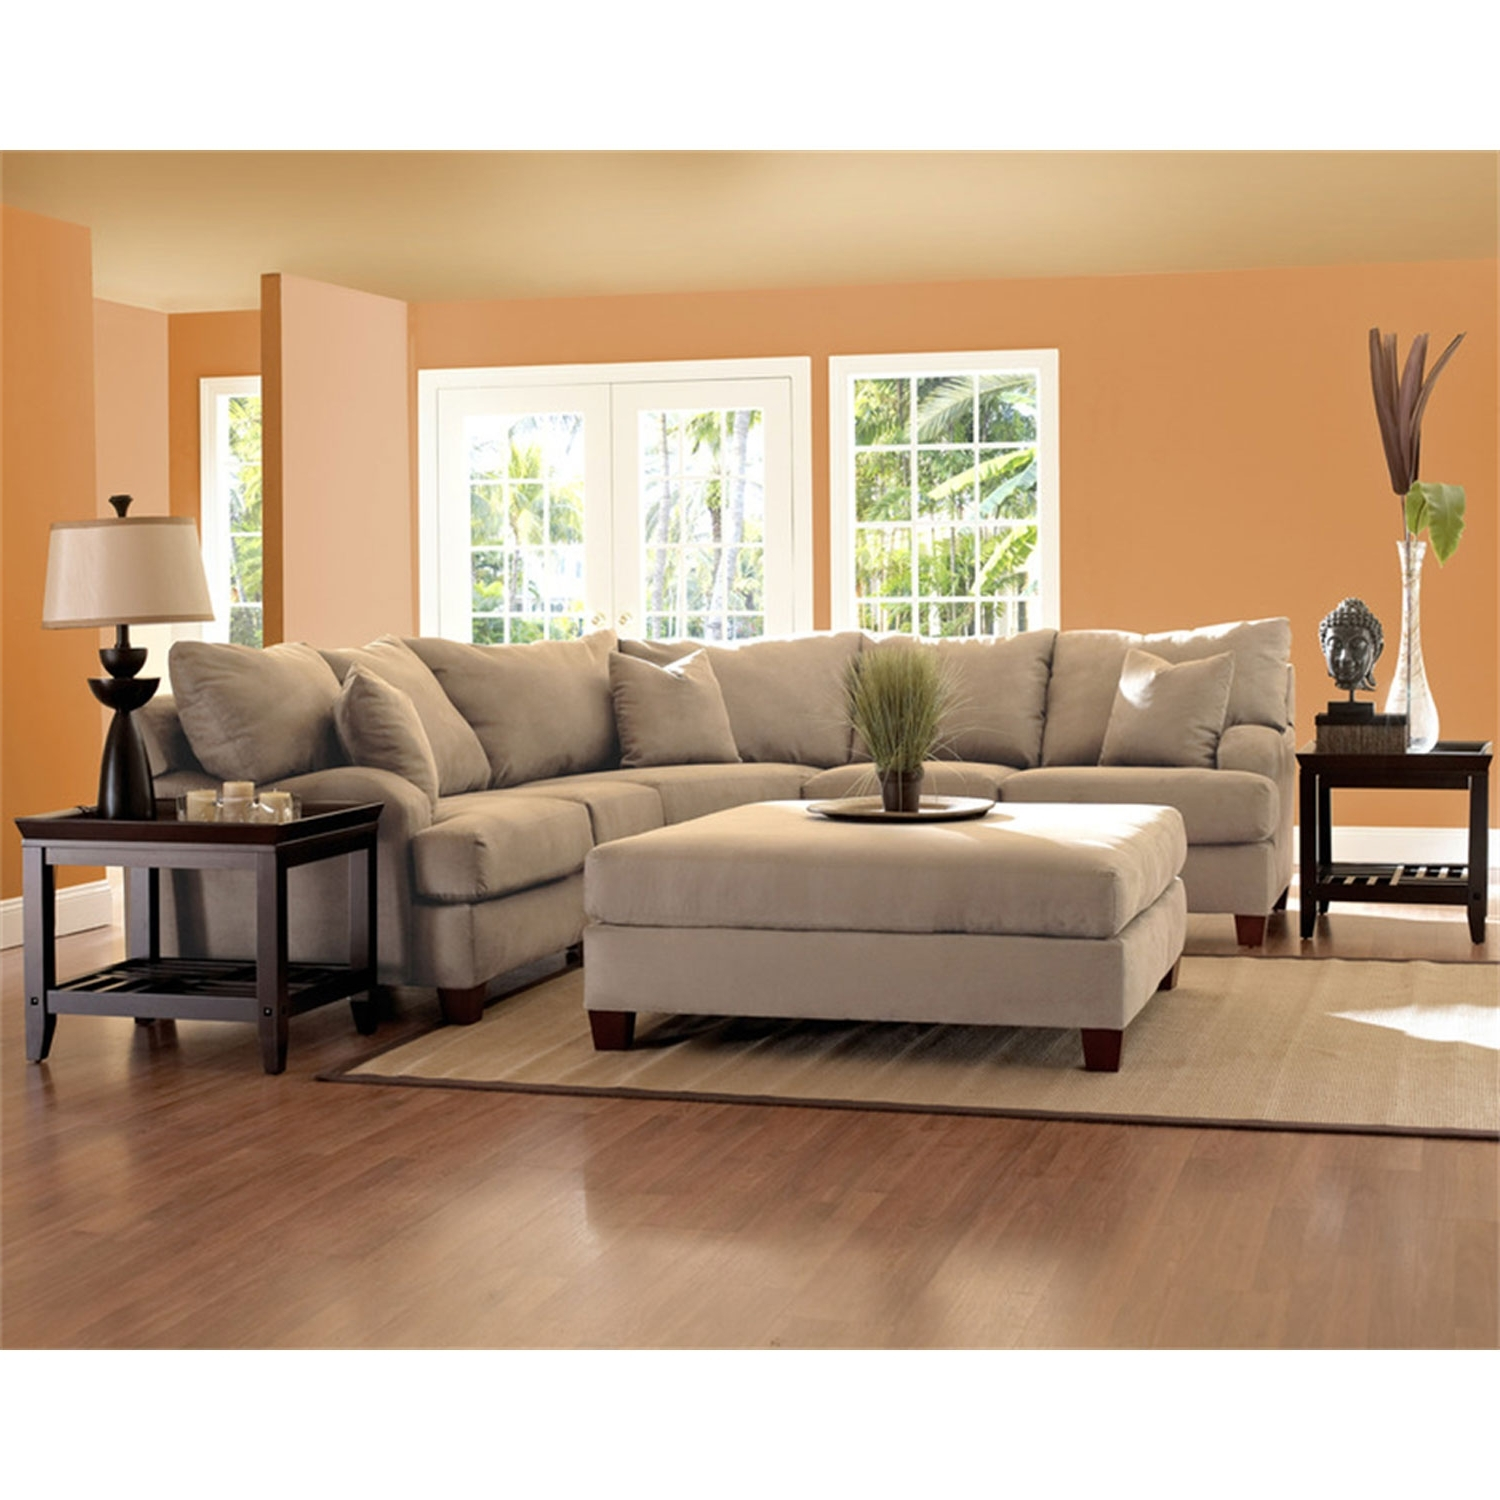 Trendy Canyon Beige Sectional Sectional Sofas Sofas & Sectionals Living With Camel Sectional Sofas (View 18 of 20)